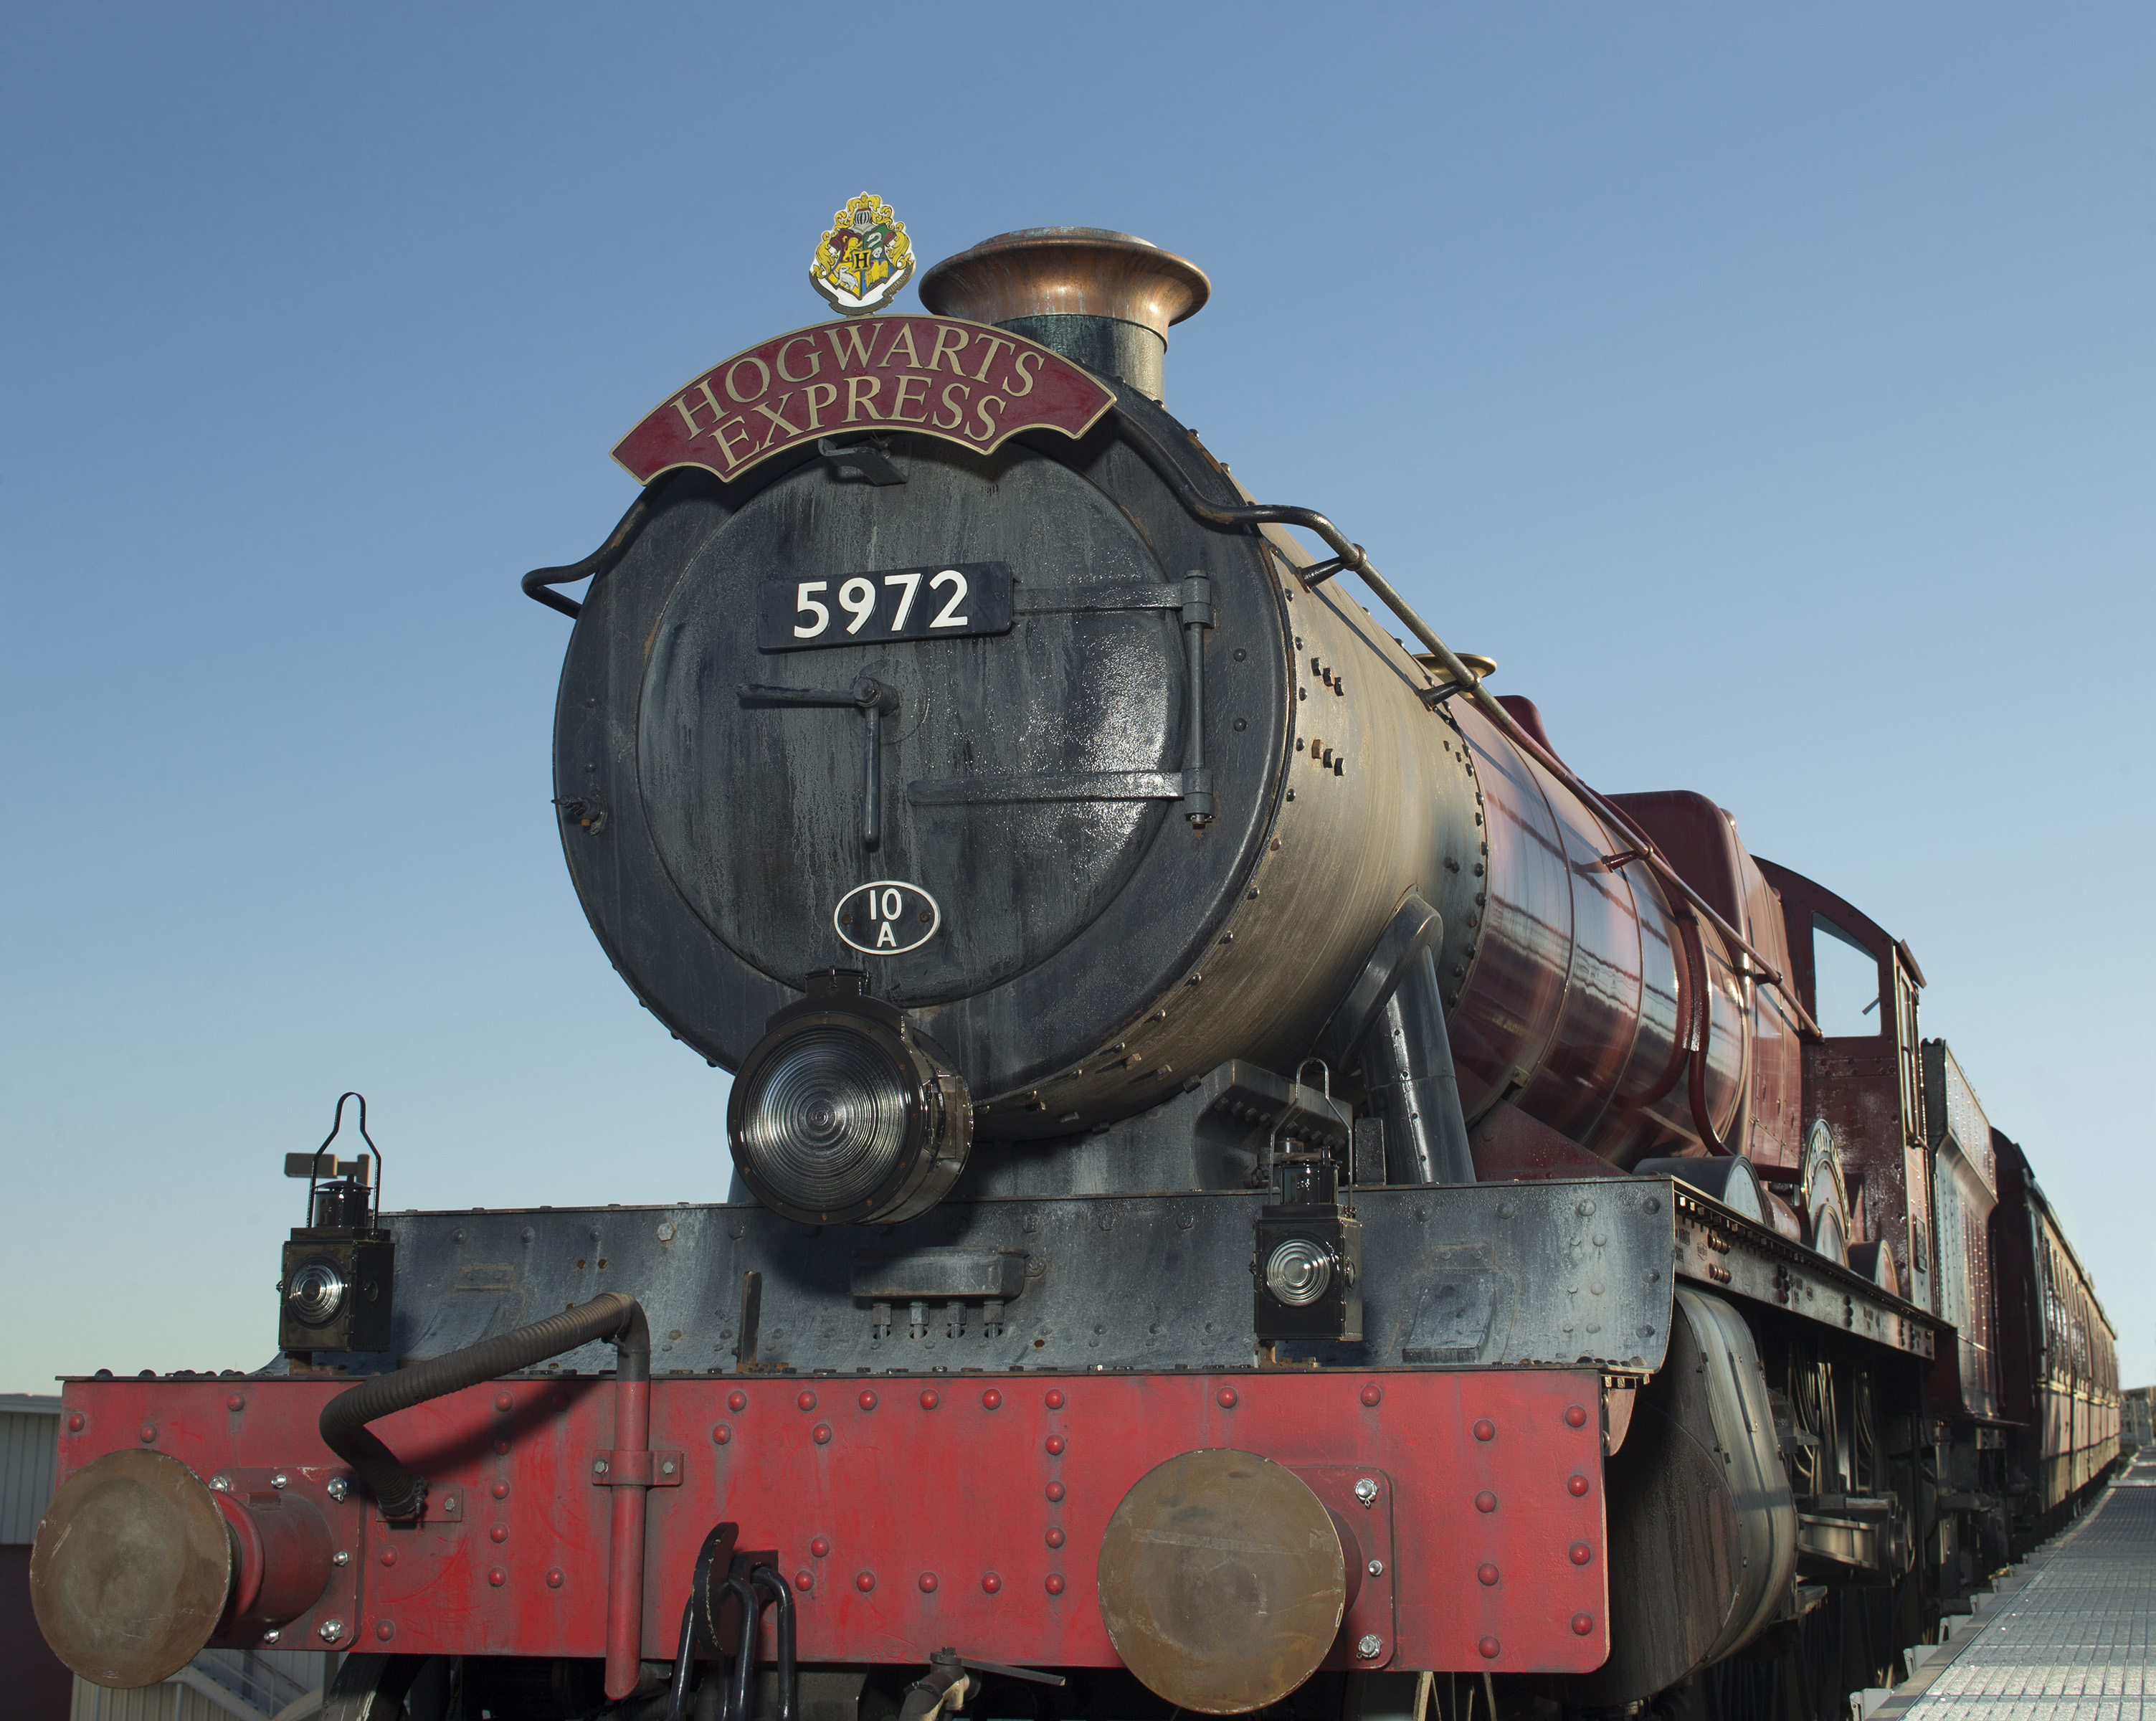 Hogwarts Express at UOR